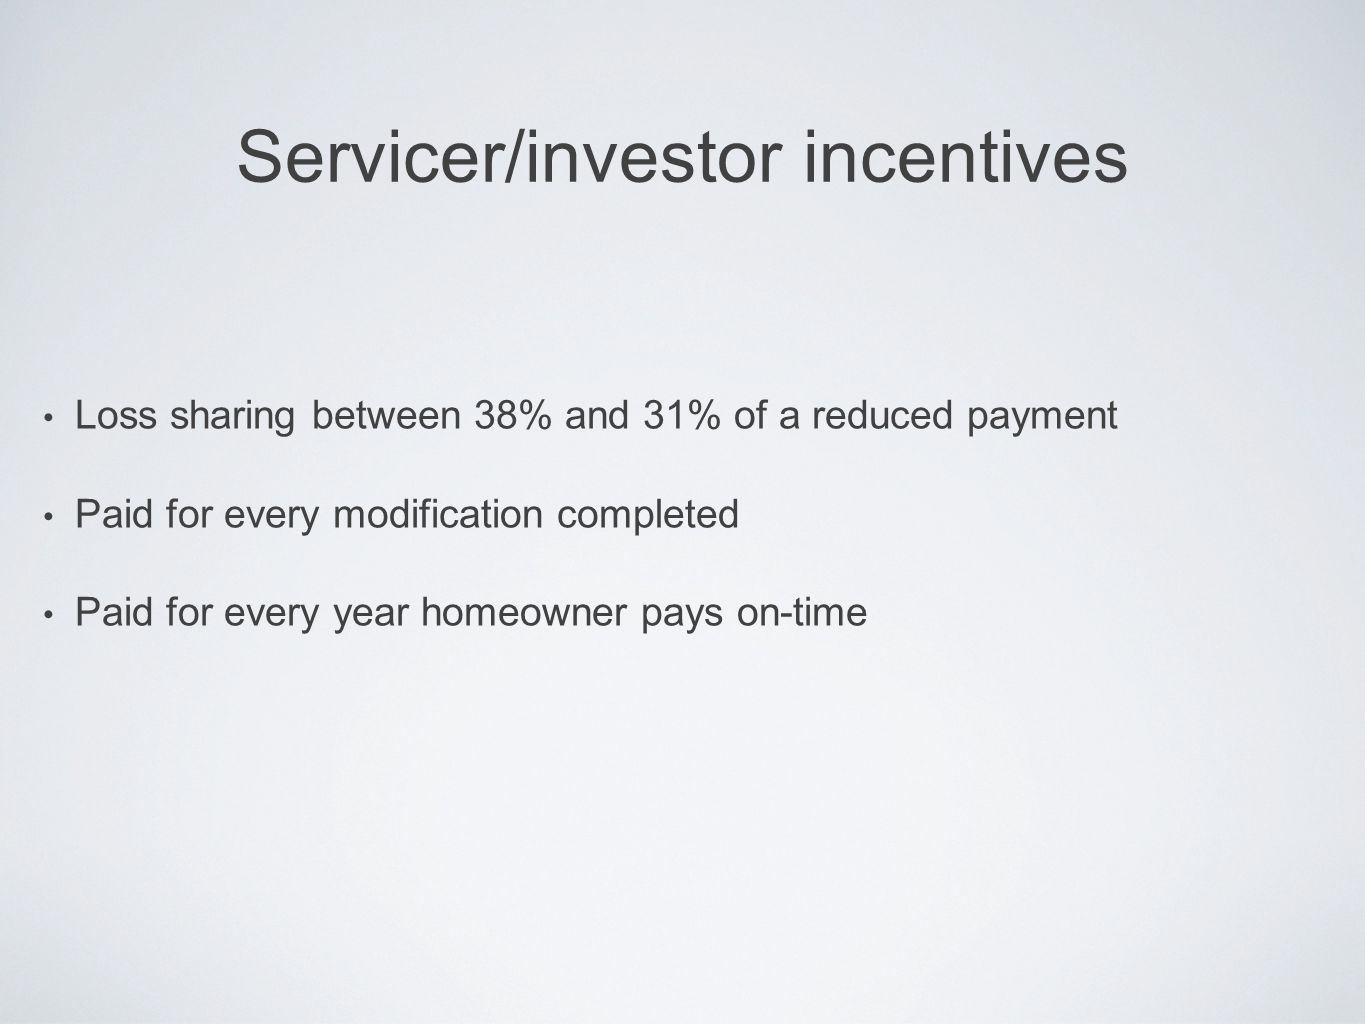 Servicer/investor incentives Loss sharing between 38% and 31% of a reduced payment Paid for every modification completed Paid for every year homeowner pays on-time